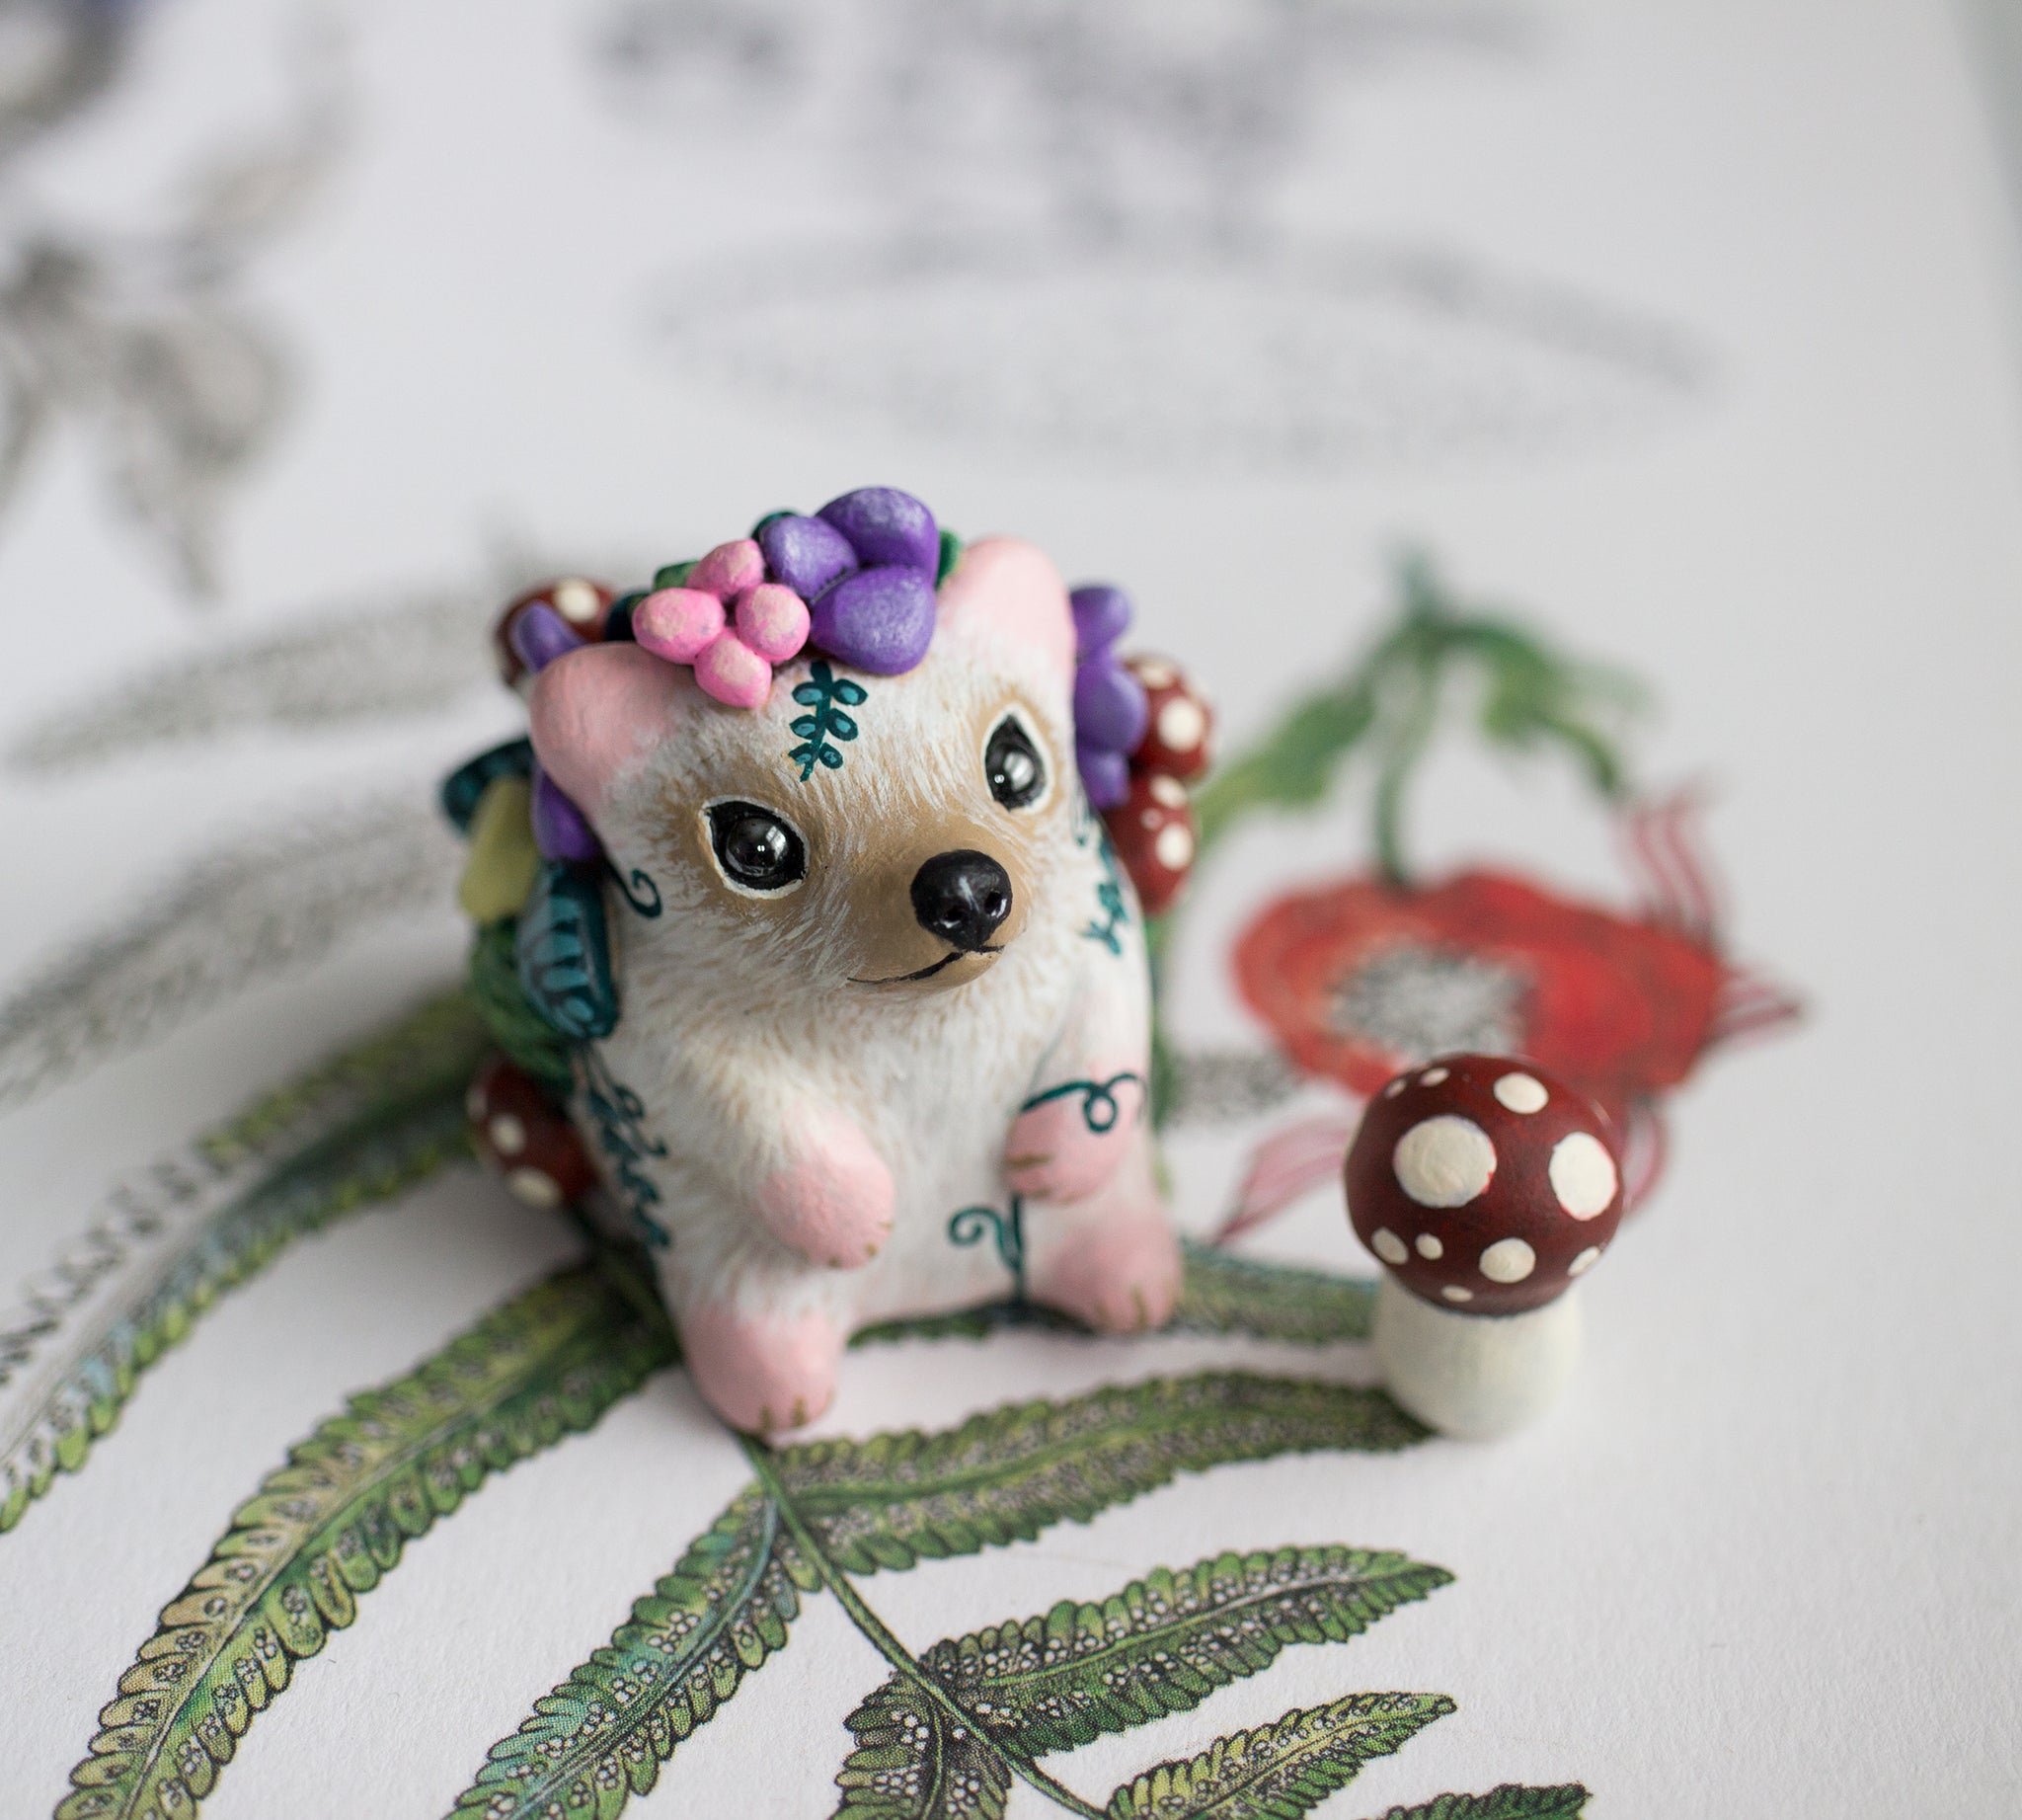 Garden Hedgehog figurine